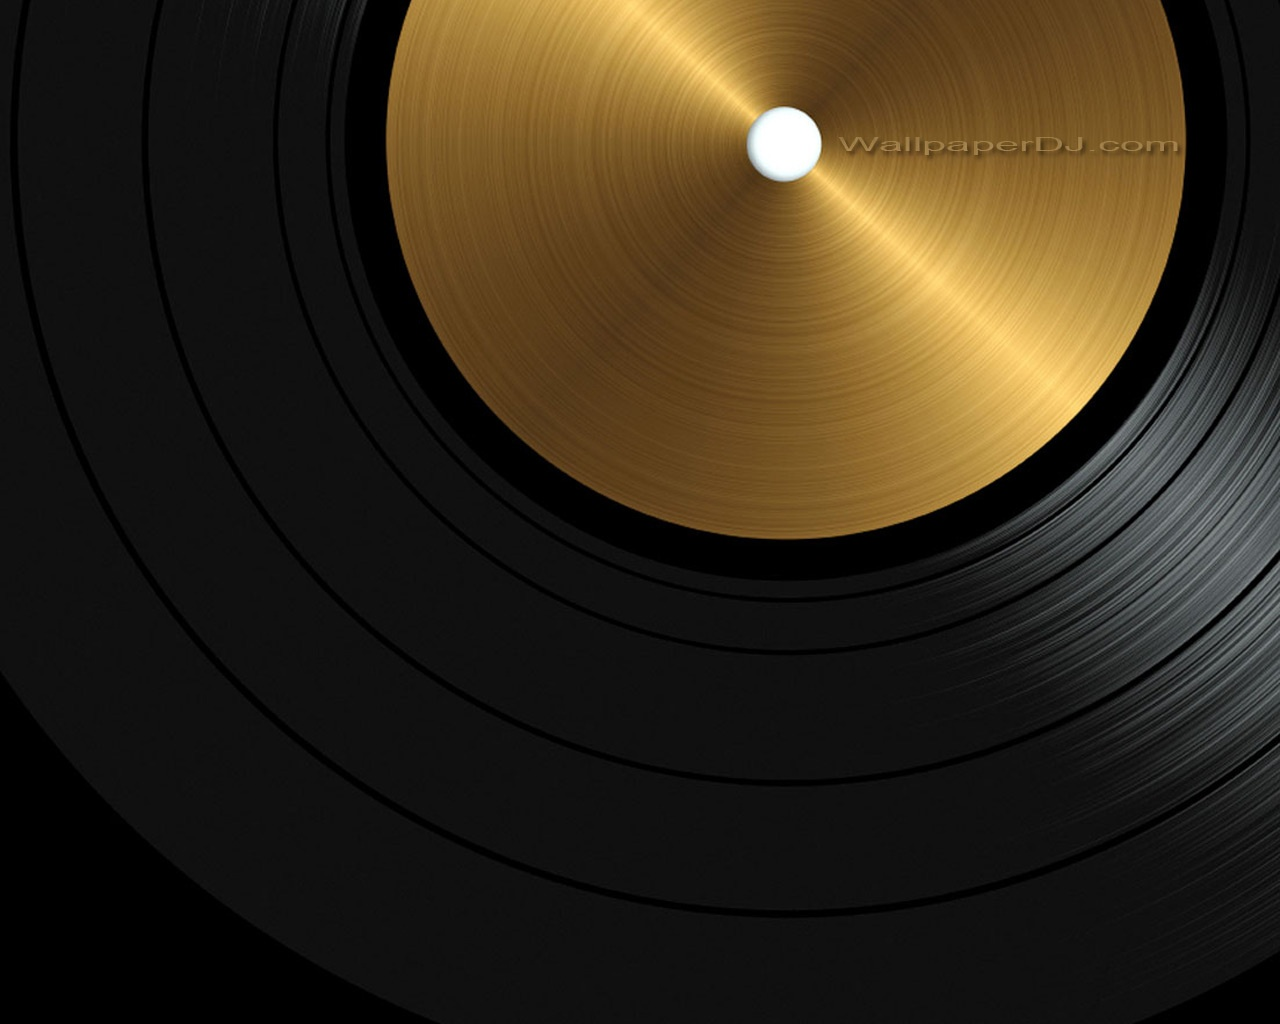 1280x1024 Golden Records wallpaper music and dance wallpapers 1280x1024